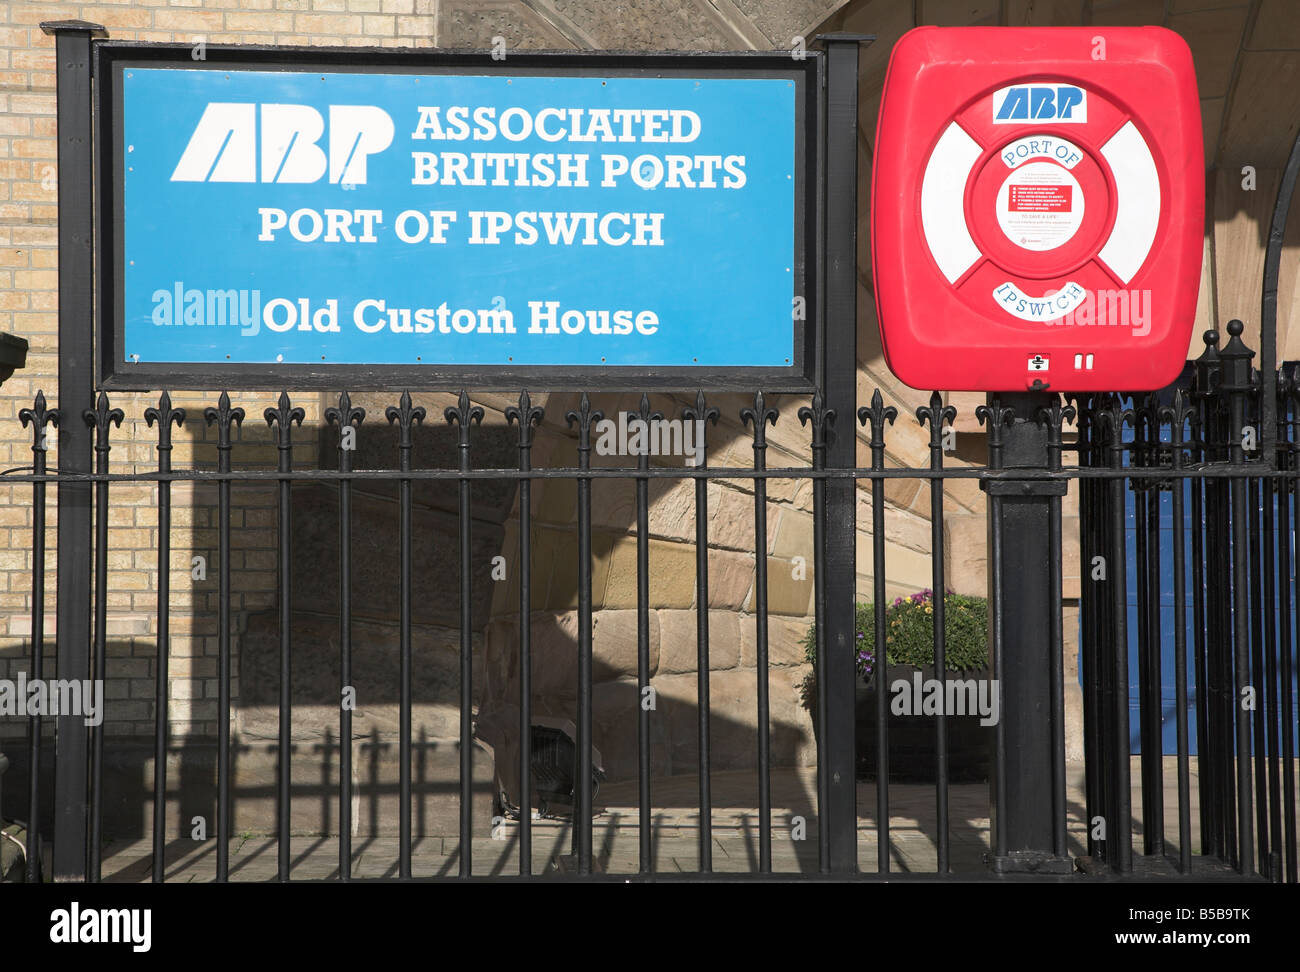 Associated British Ports Port of Ipswich Old Custom House Ipswich Suffolk England - Stock Image